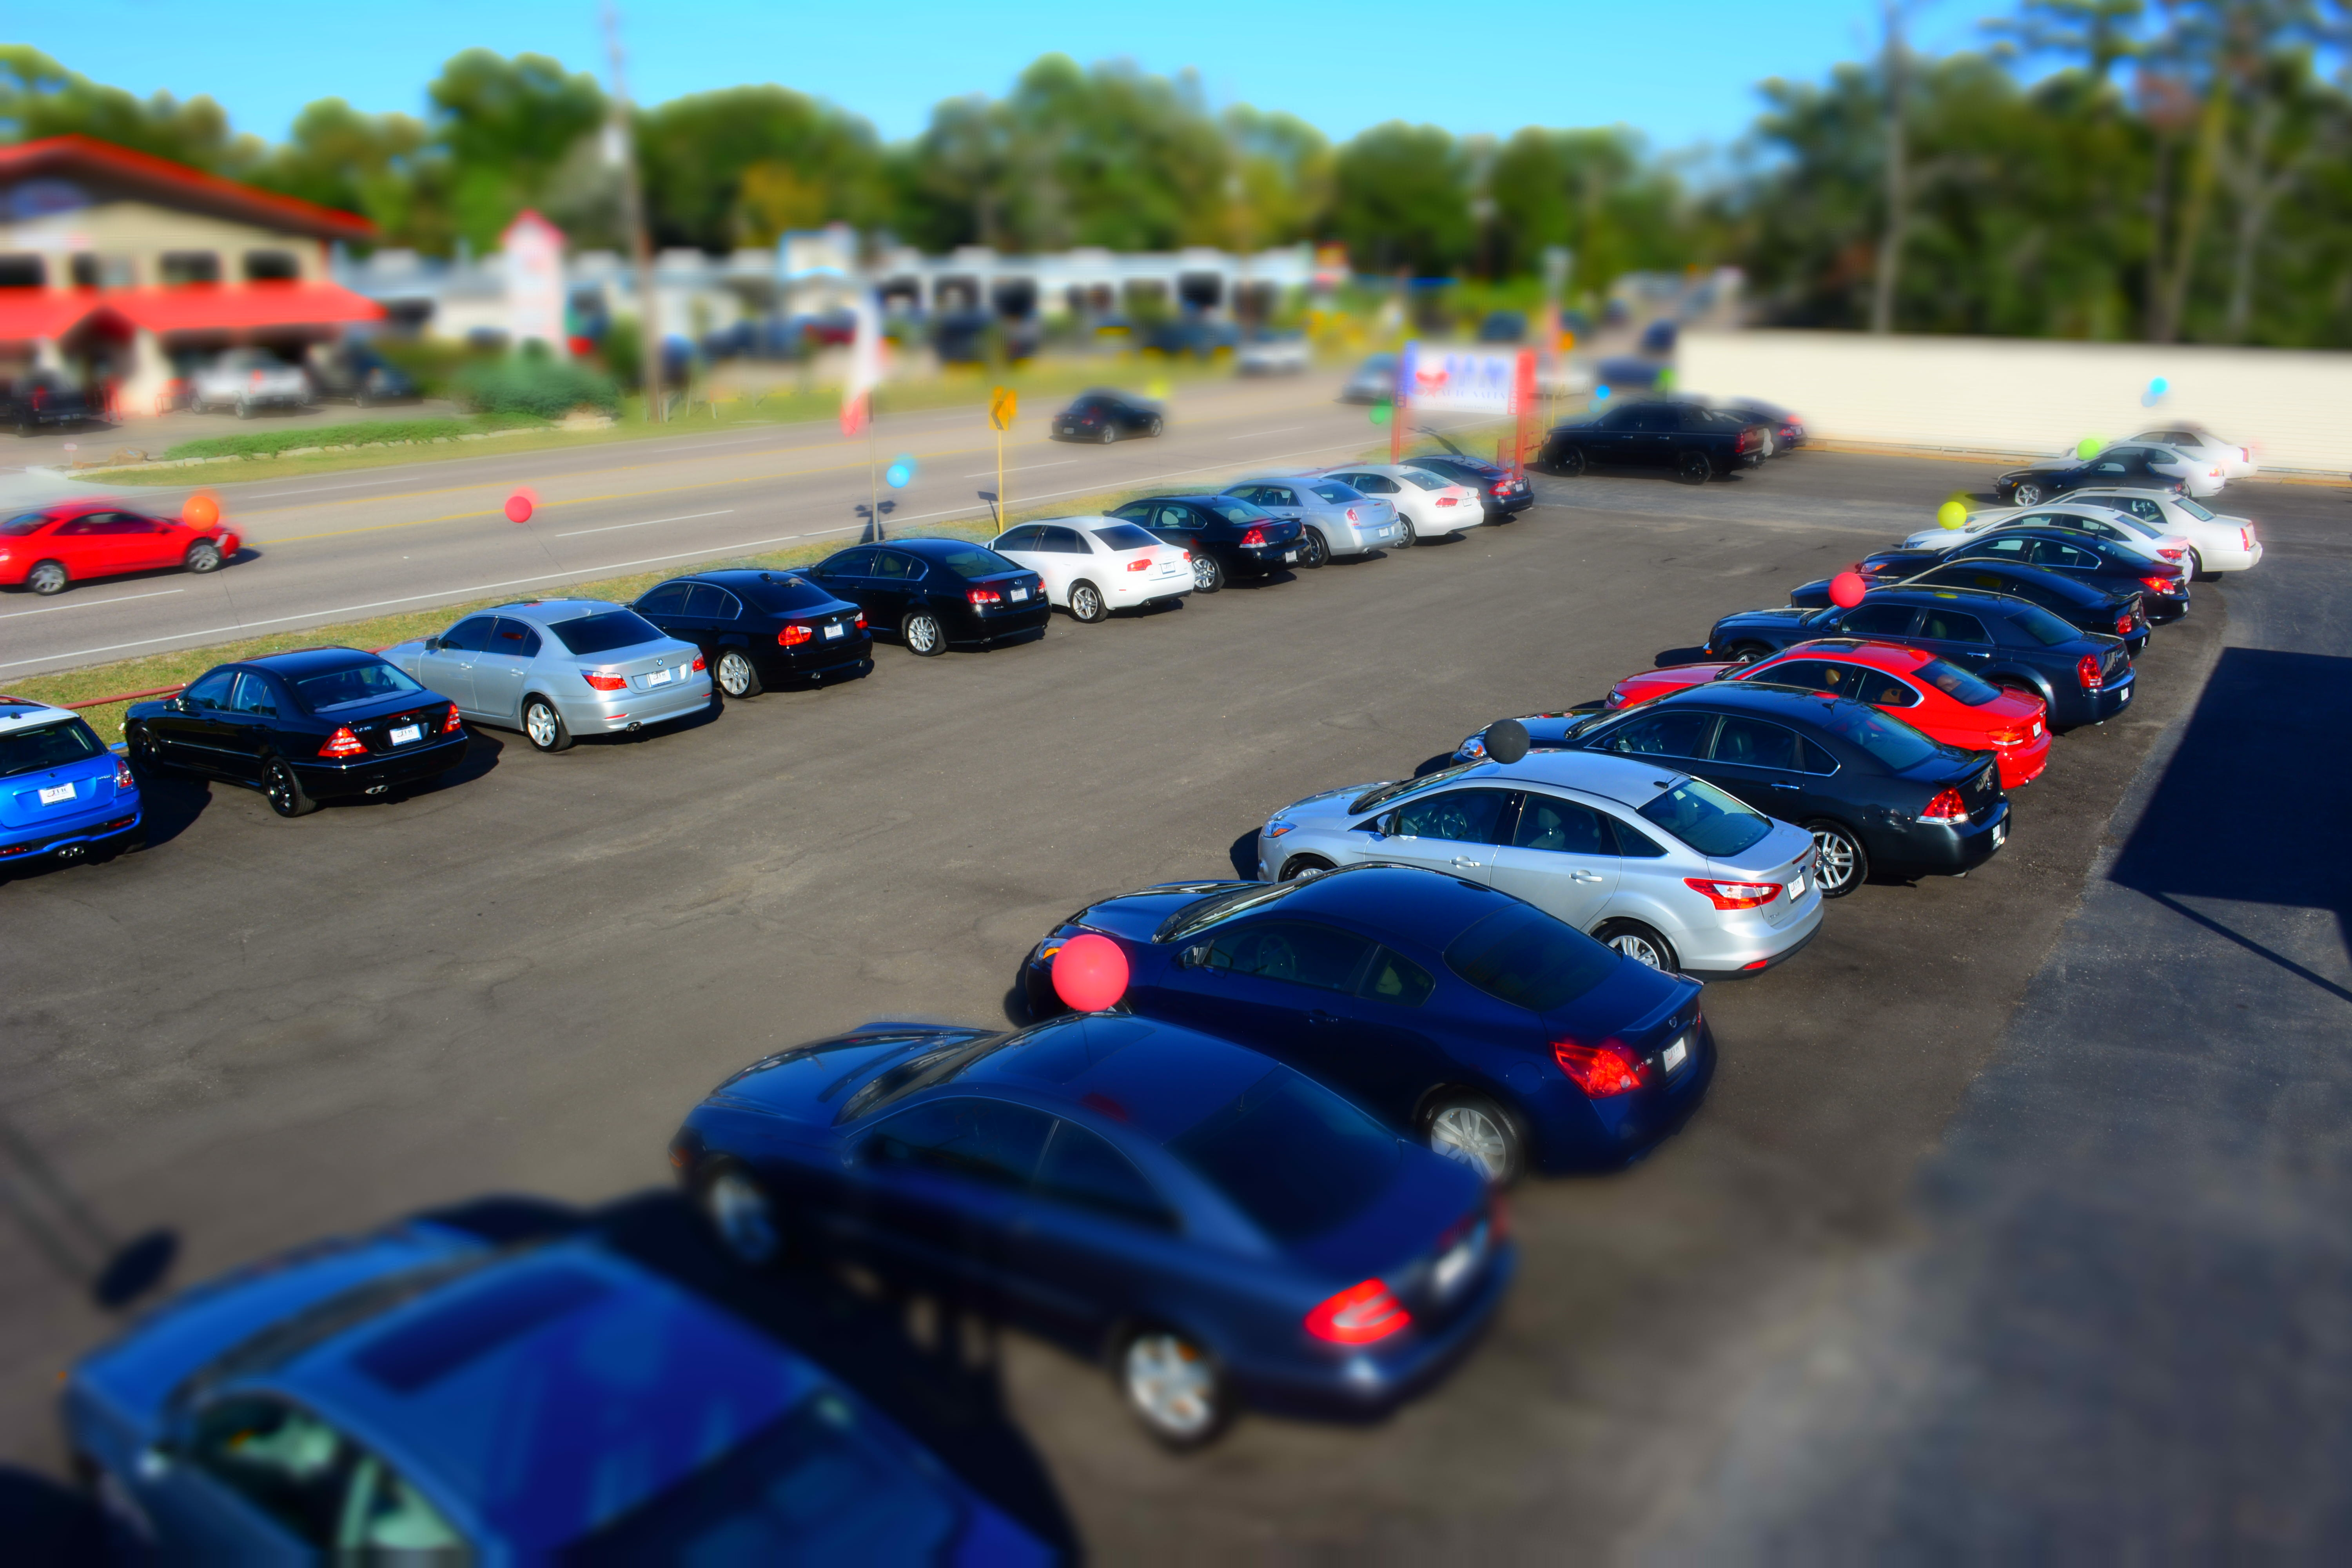 Cypress Auto Sales: Nearby Businesses